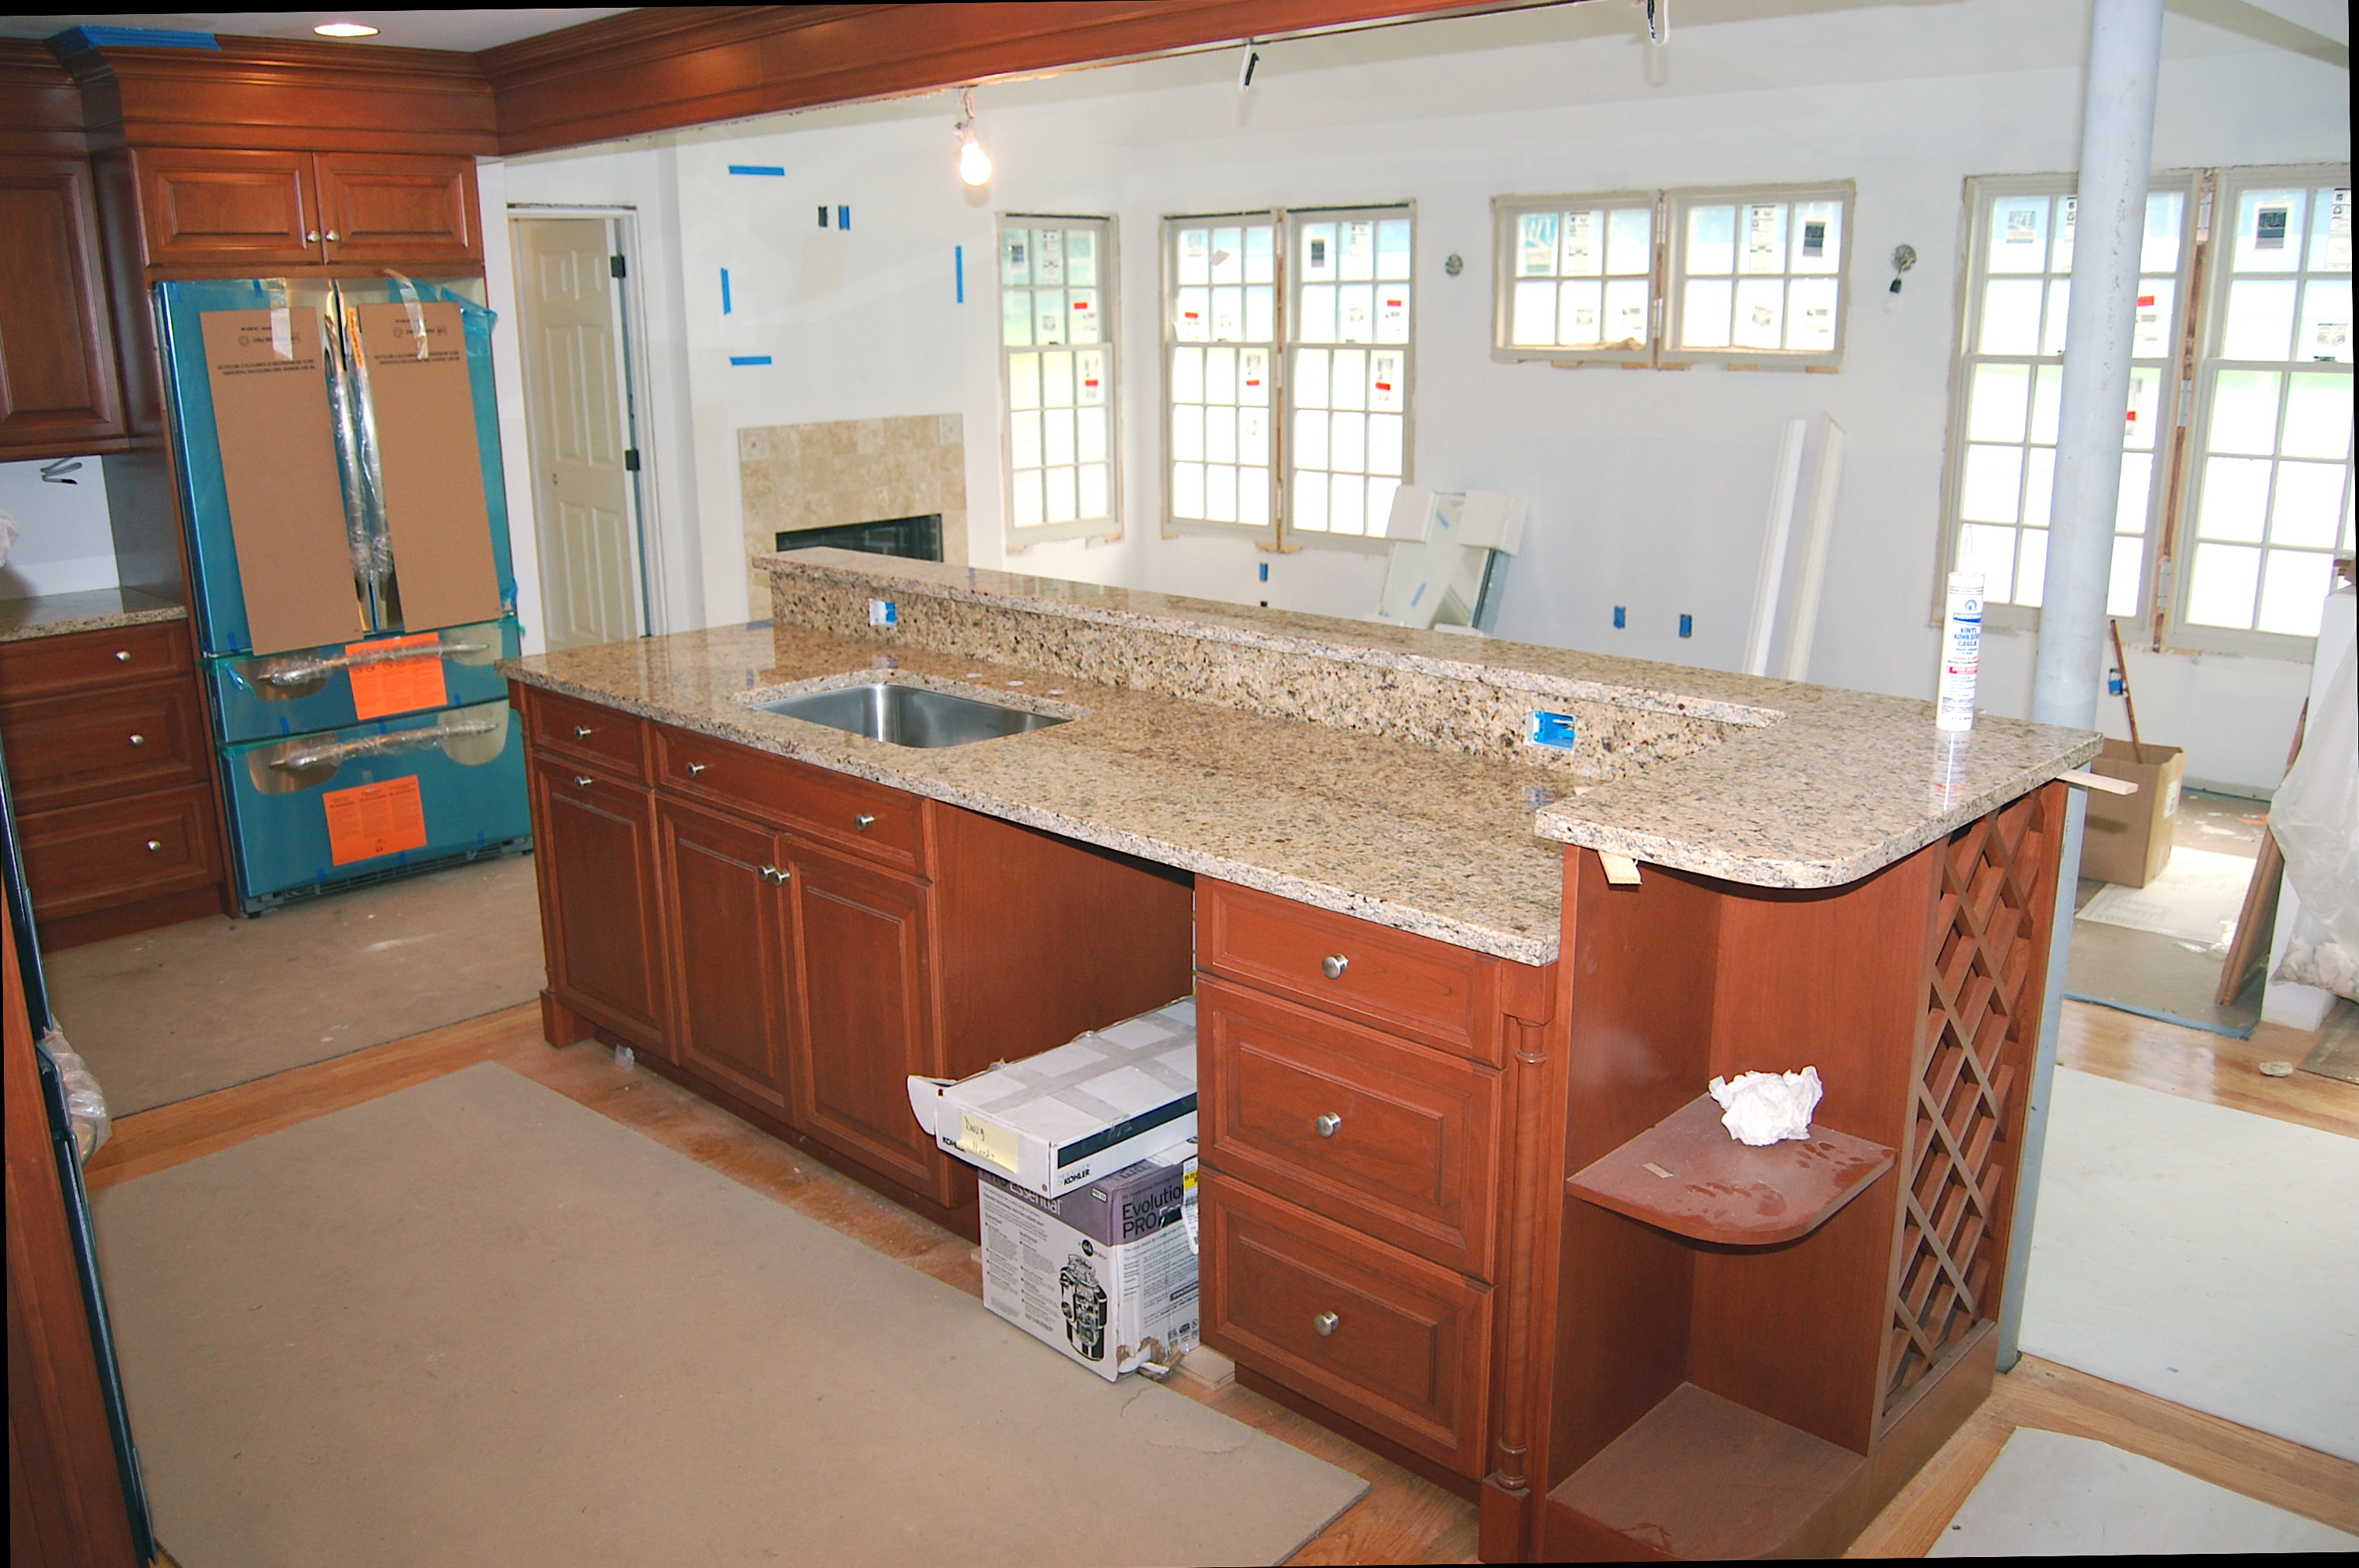 Kitchen cabinets and countertops king of prussia rd addition for Adelphi kitchen cabinets